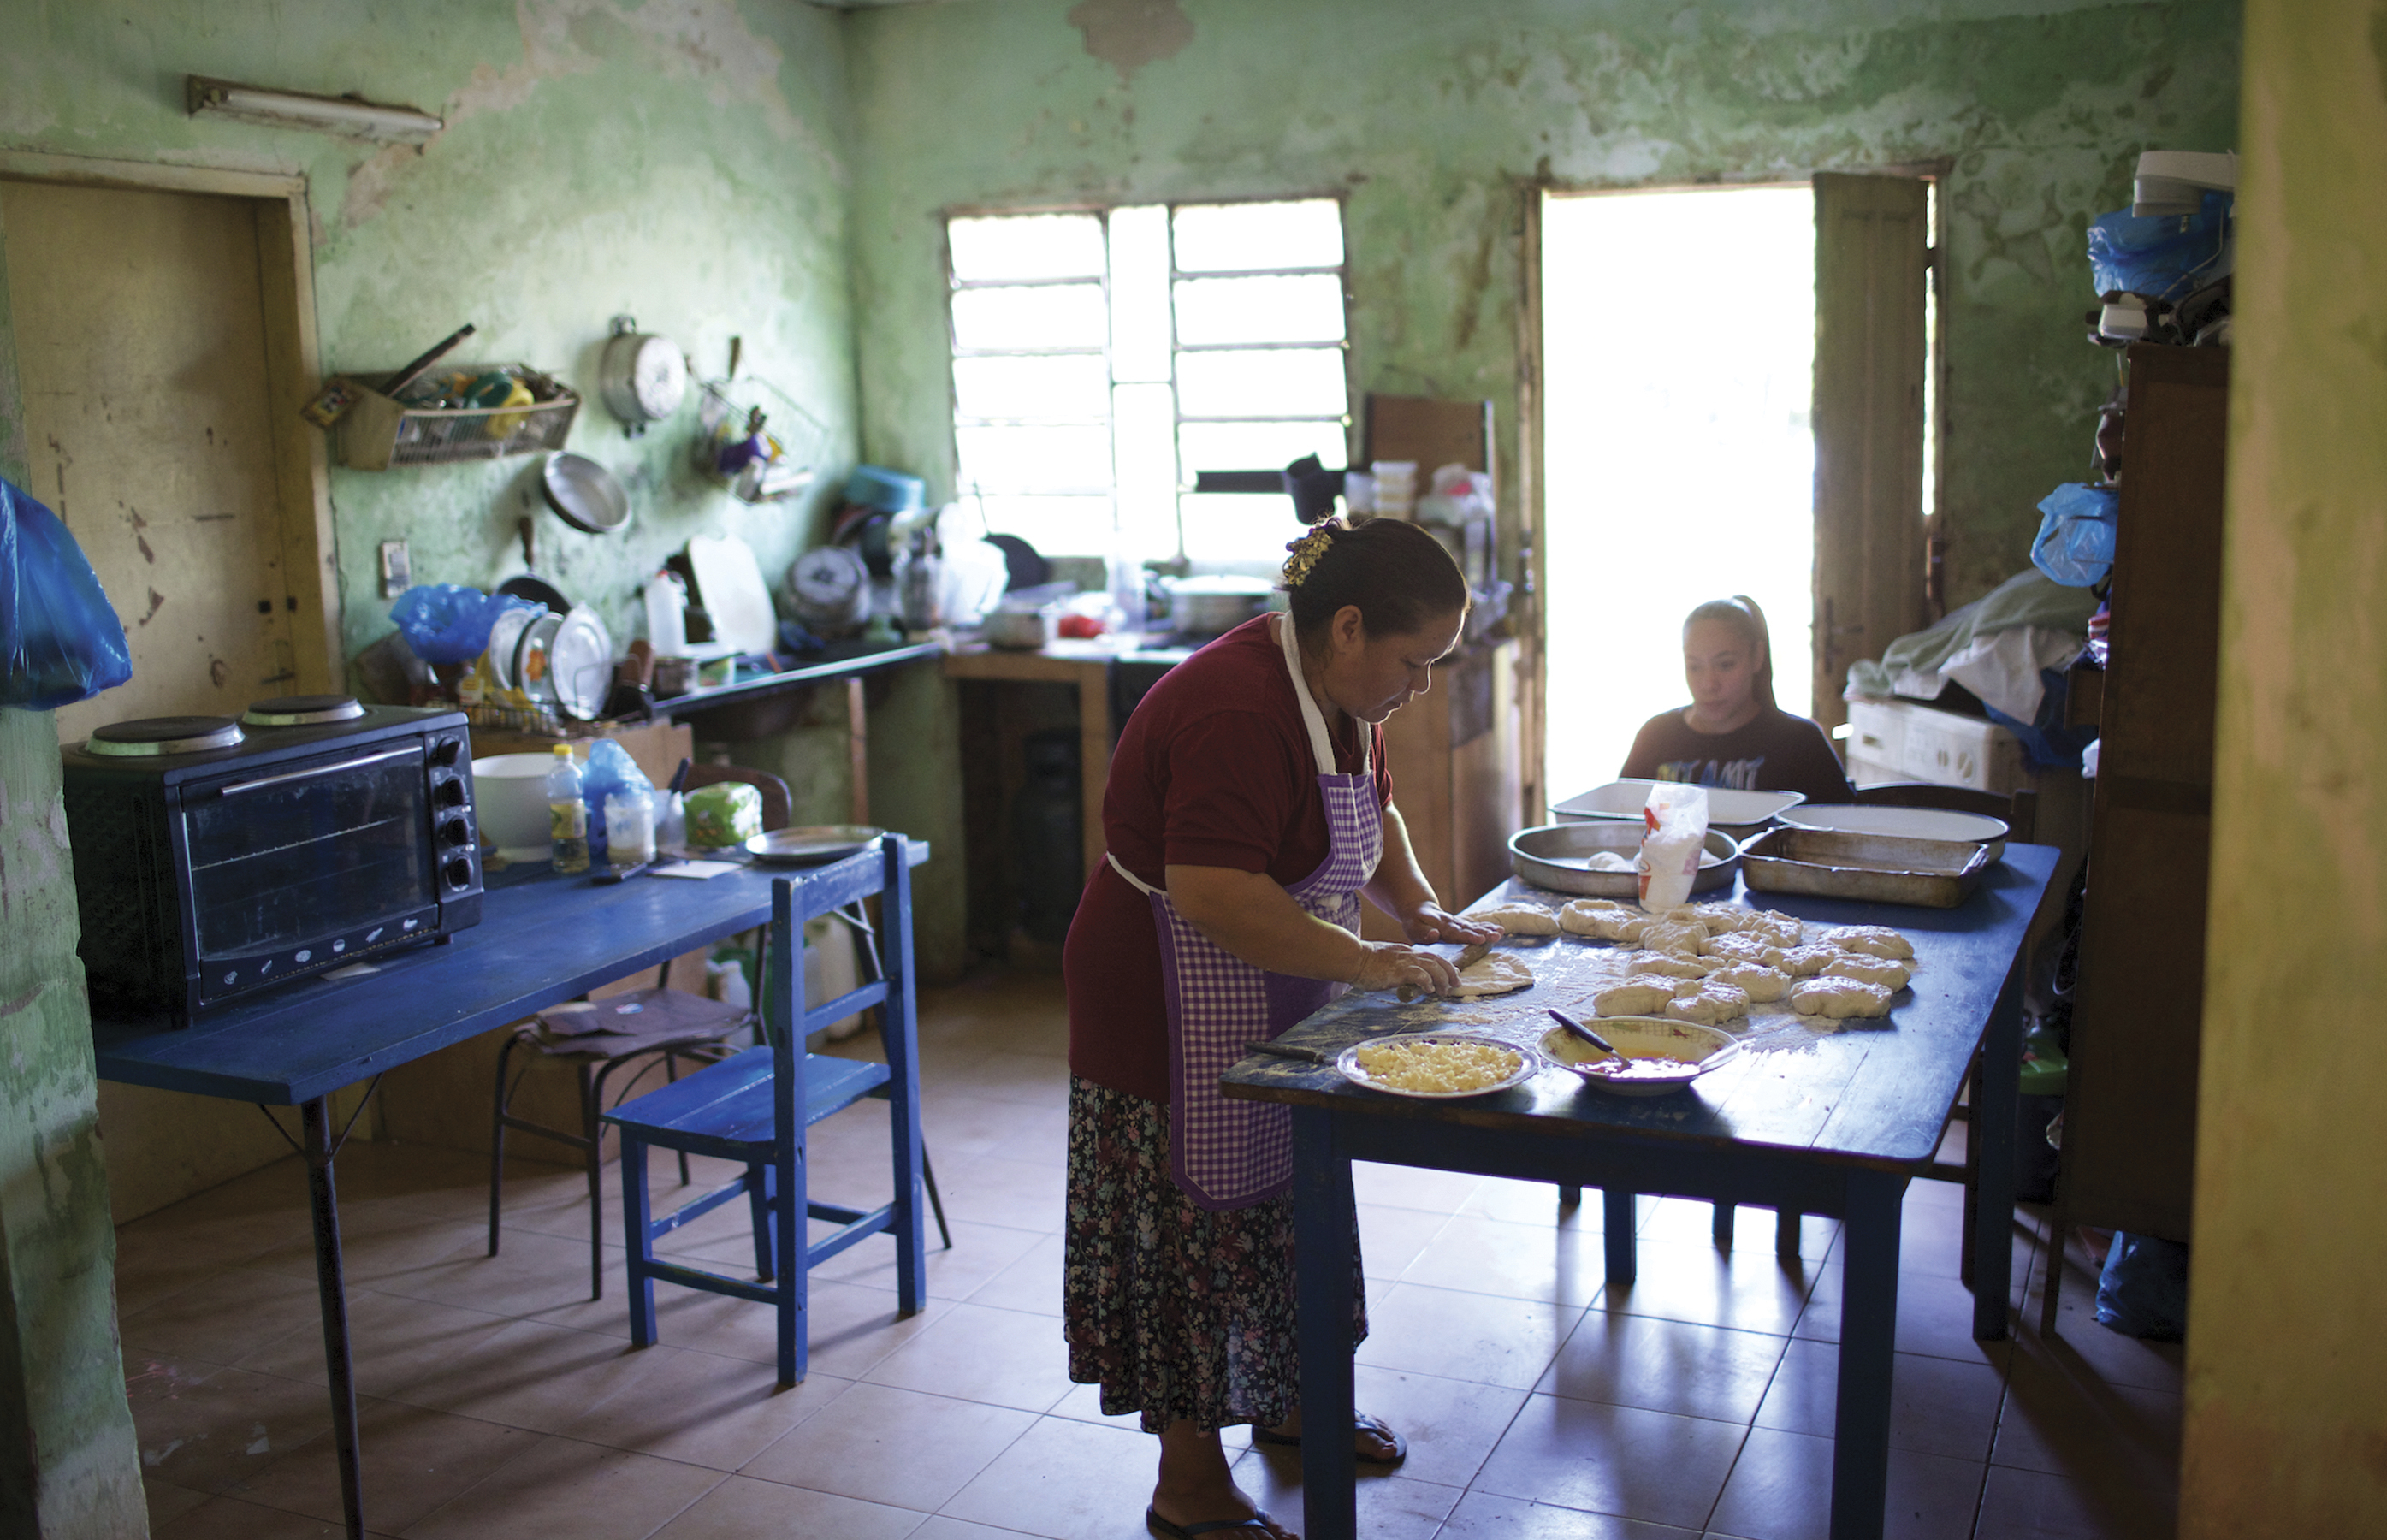 The day begins early for Adriana as she prepares dough for the bread she will bake and sell. All day long the kitchen table serves as a gathering place for the González family.